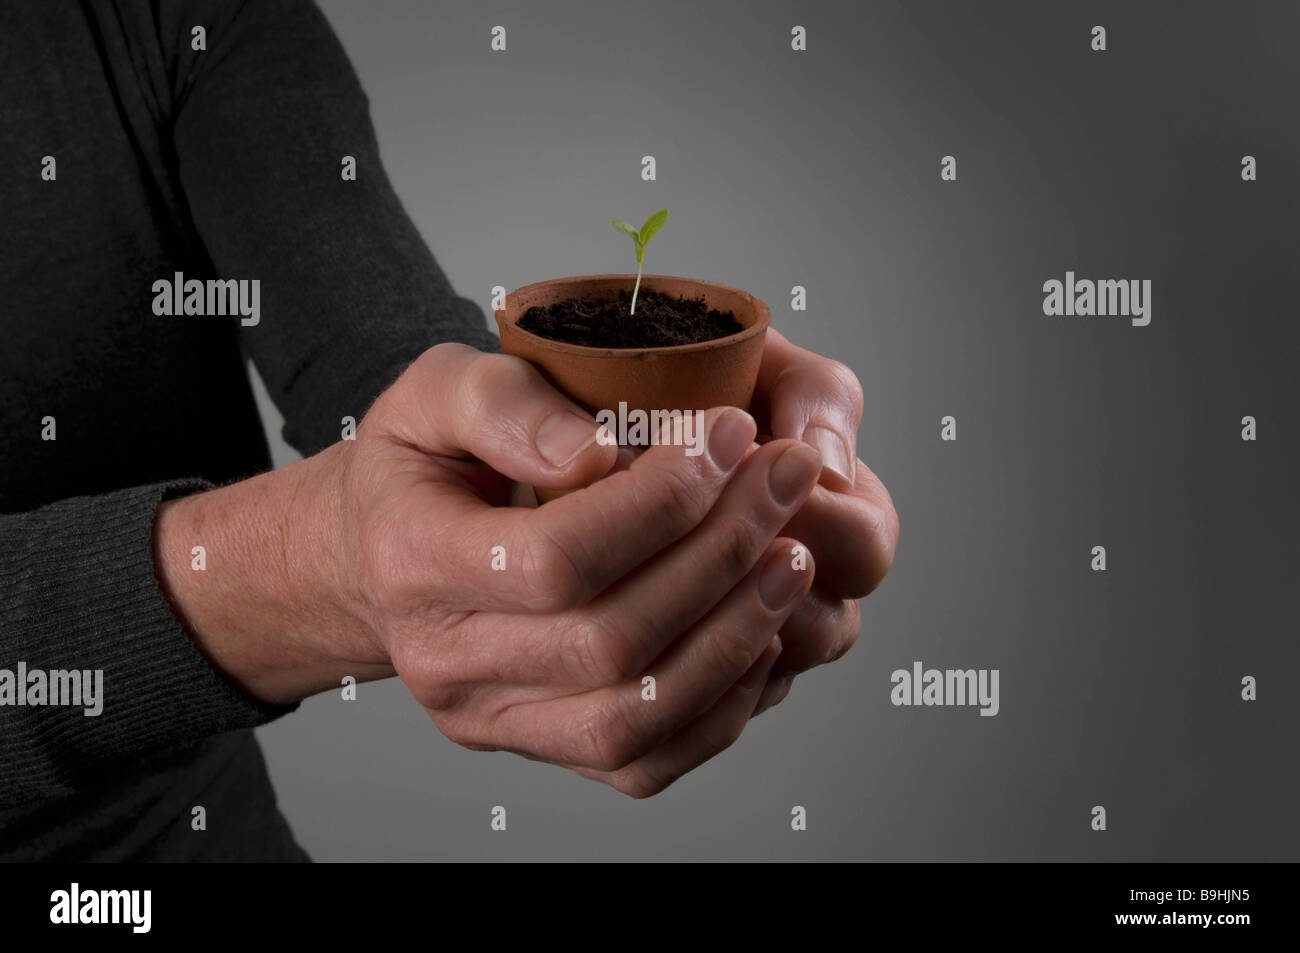 Female hands holding a seedling - Stock Image